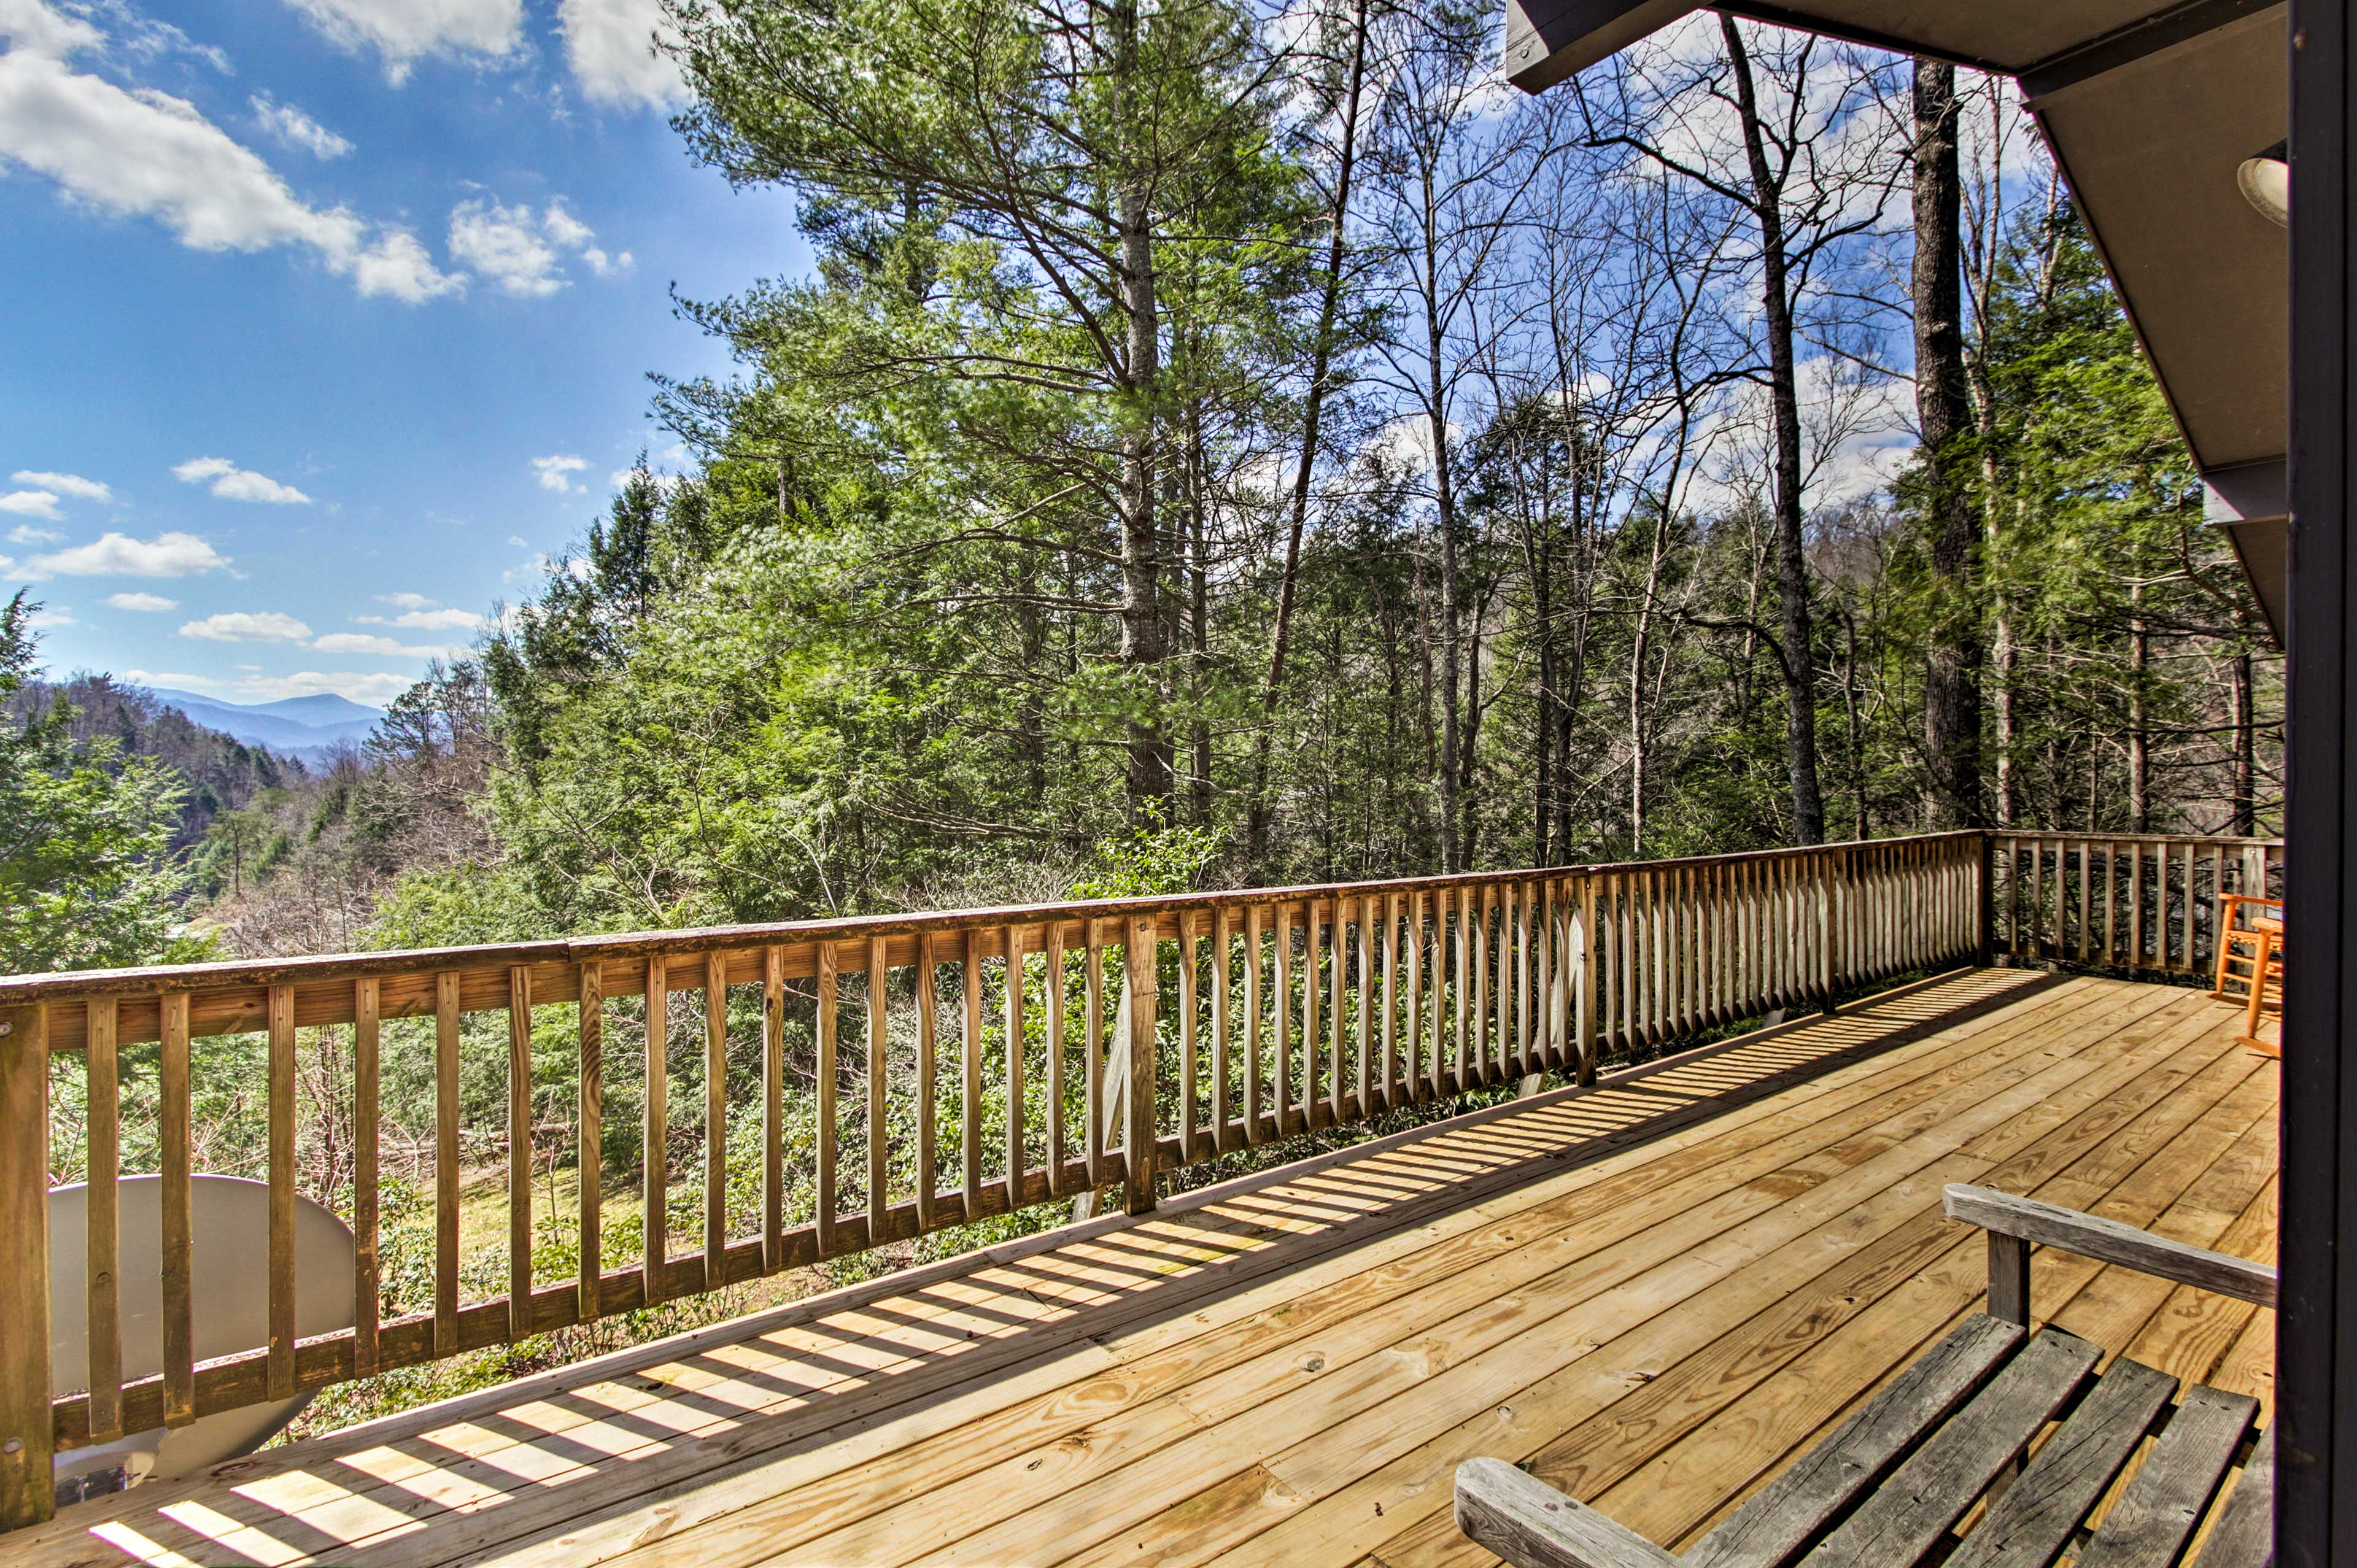 Immerse yourself in nature at this 3-bedroom, 2-bath mountain-view cabin!